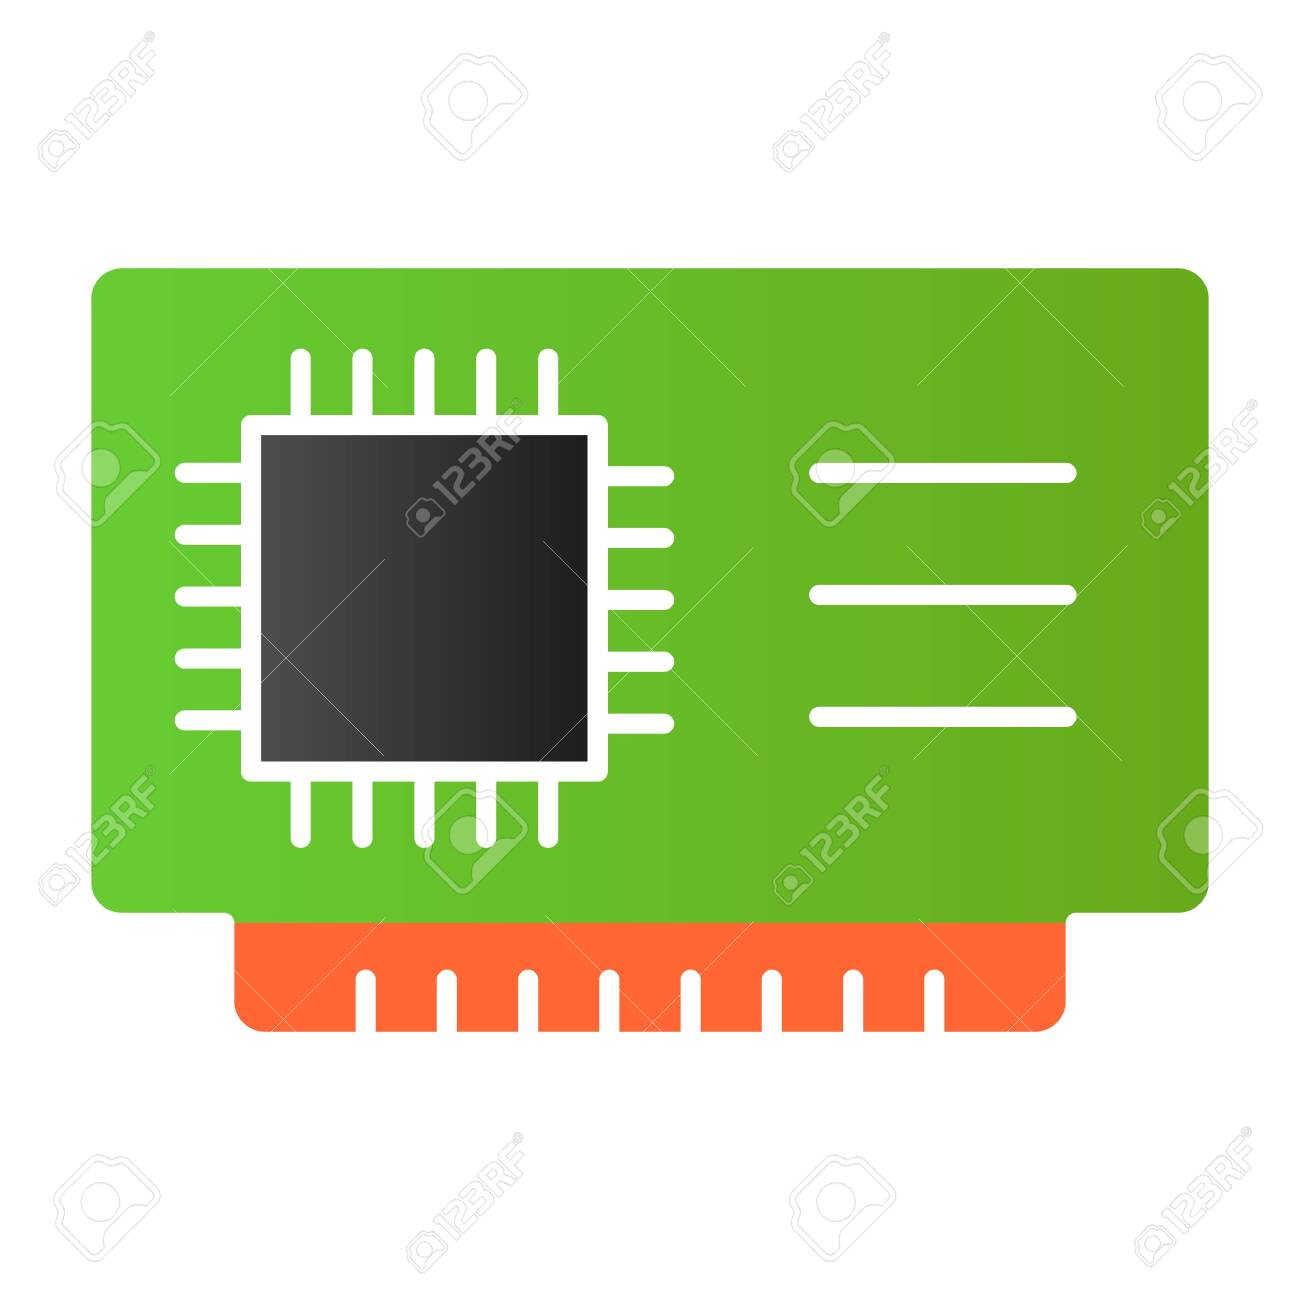 microchip flat icon cpu vector illustration isolated on white royalty free cliparts vectors and stock illustration image 141294017 123rf com